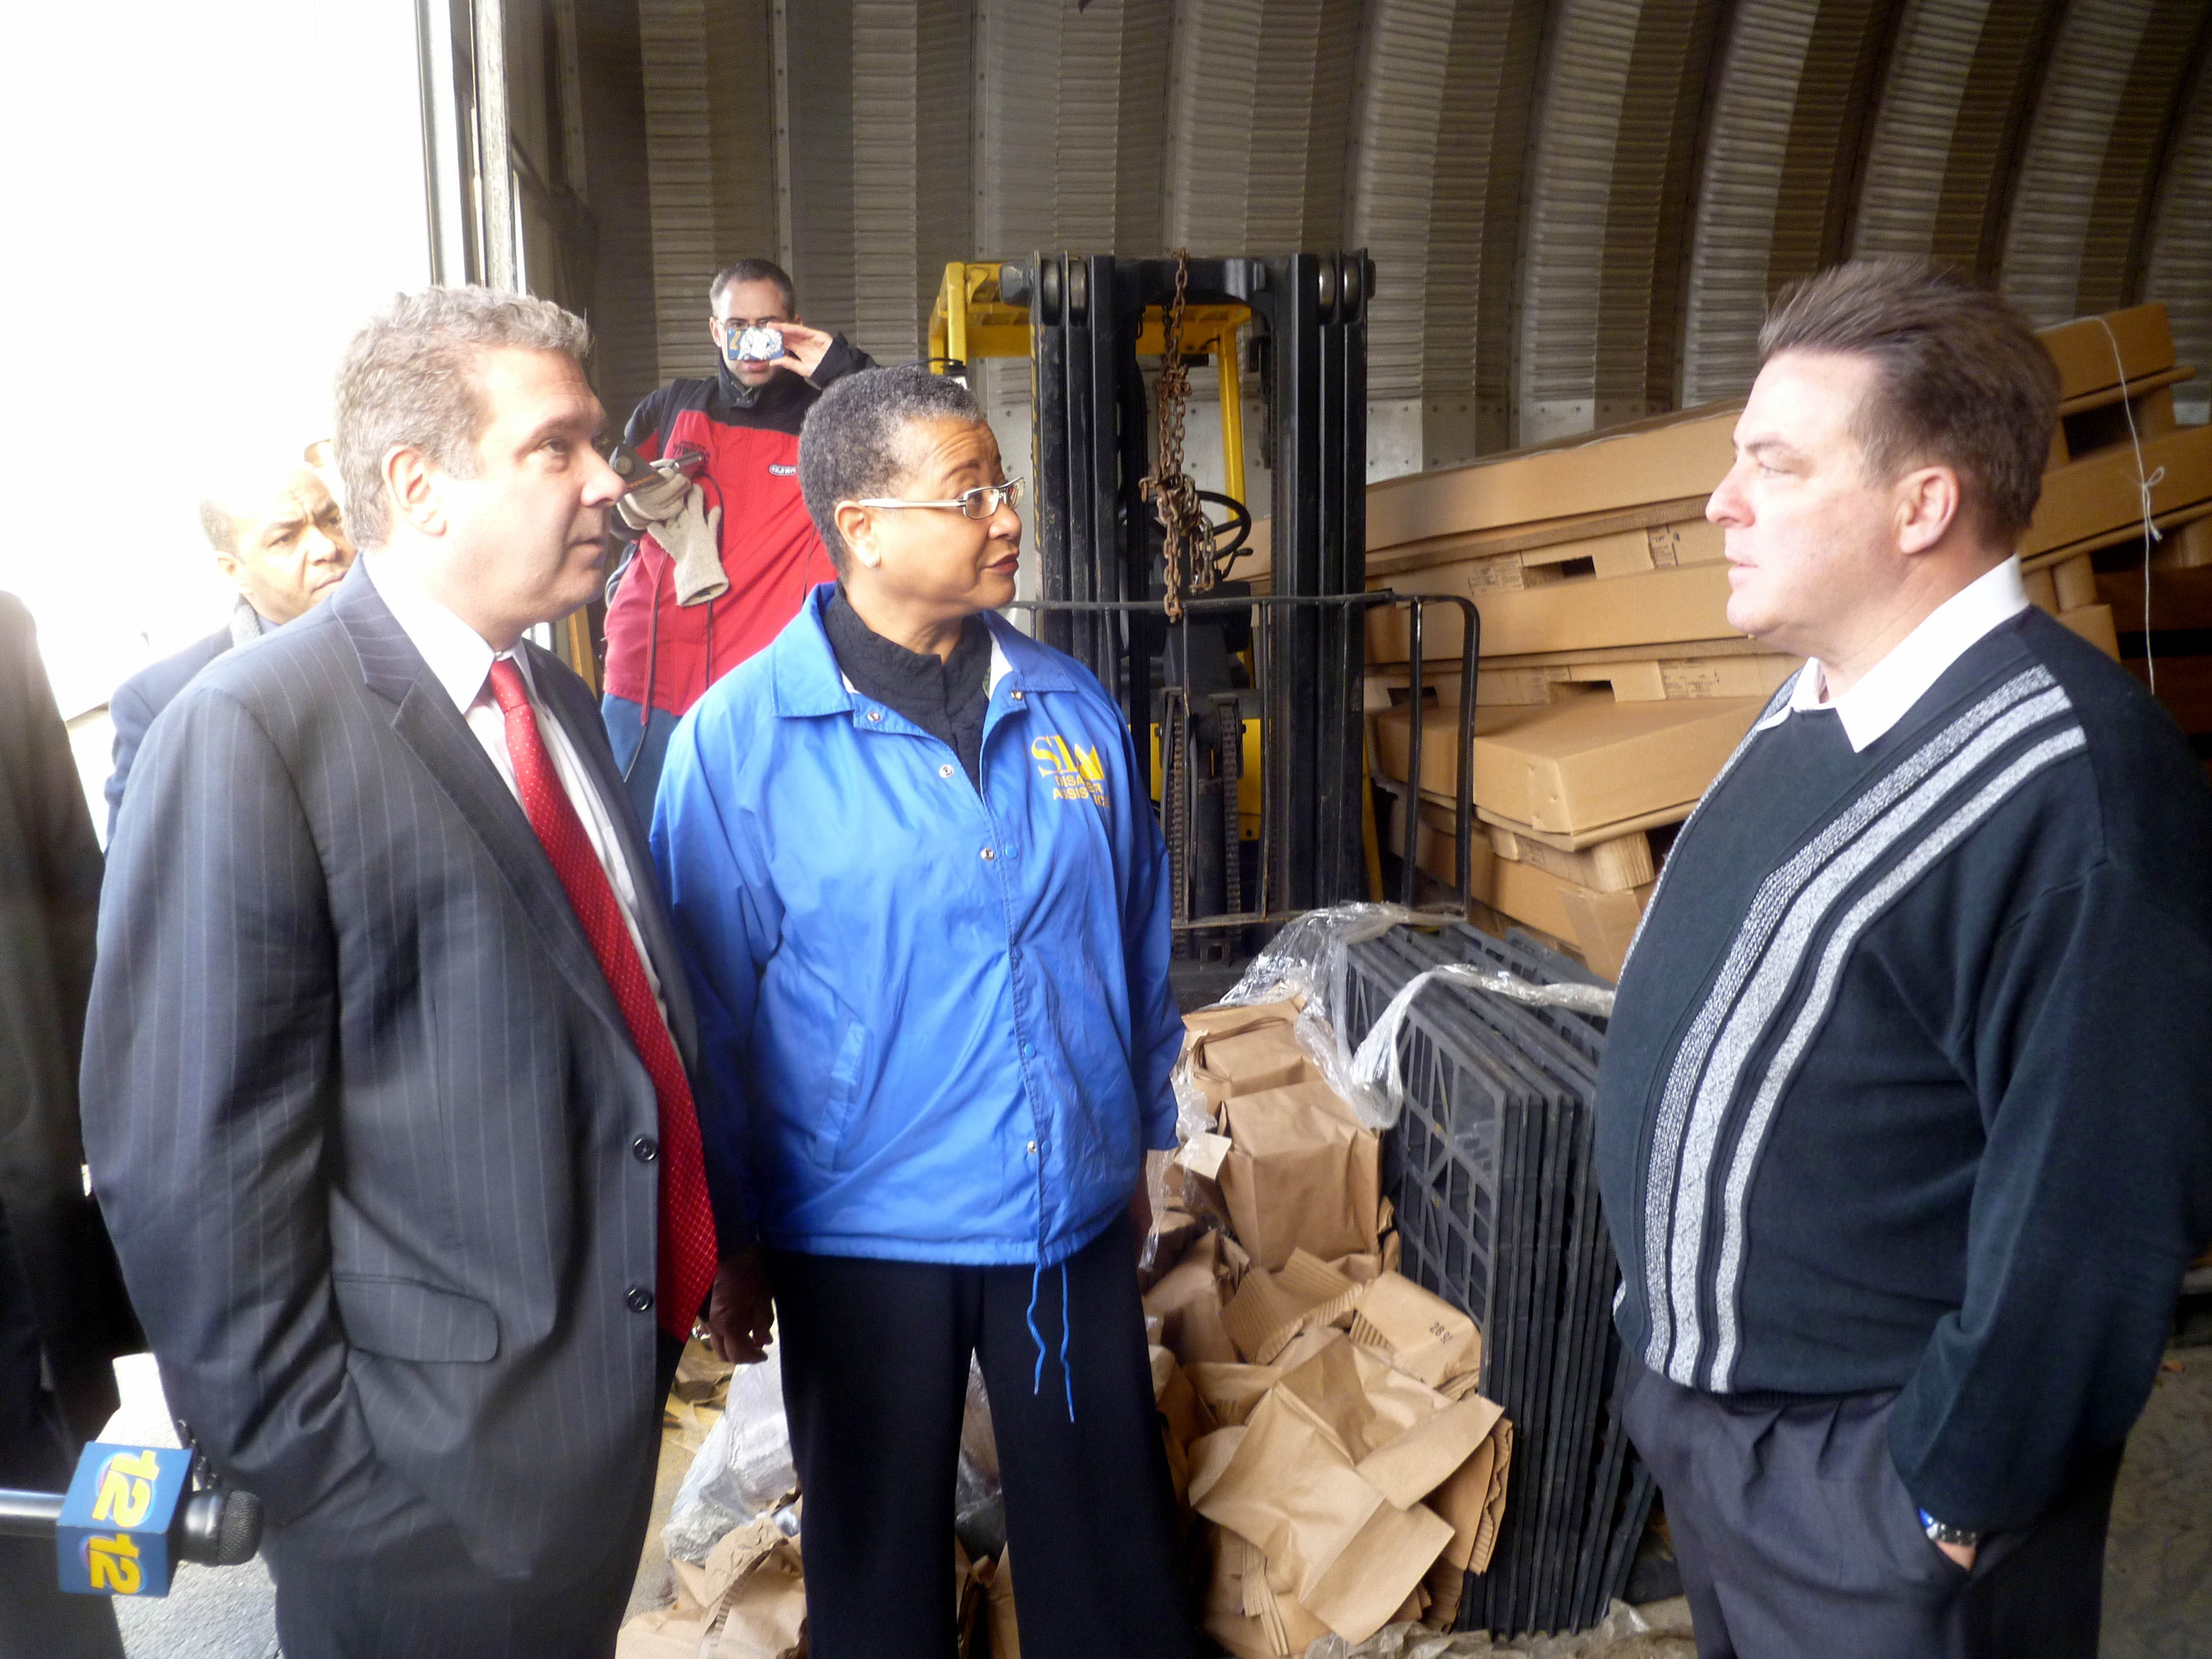 Marie Johns, deputy administrator of the U.S. Small Business Administration, toured Altman Lighting Wednesday with Yonkers Mayor Mike Spano (left) and Robert Altman, president of the lighting company (right).